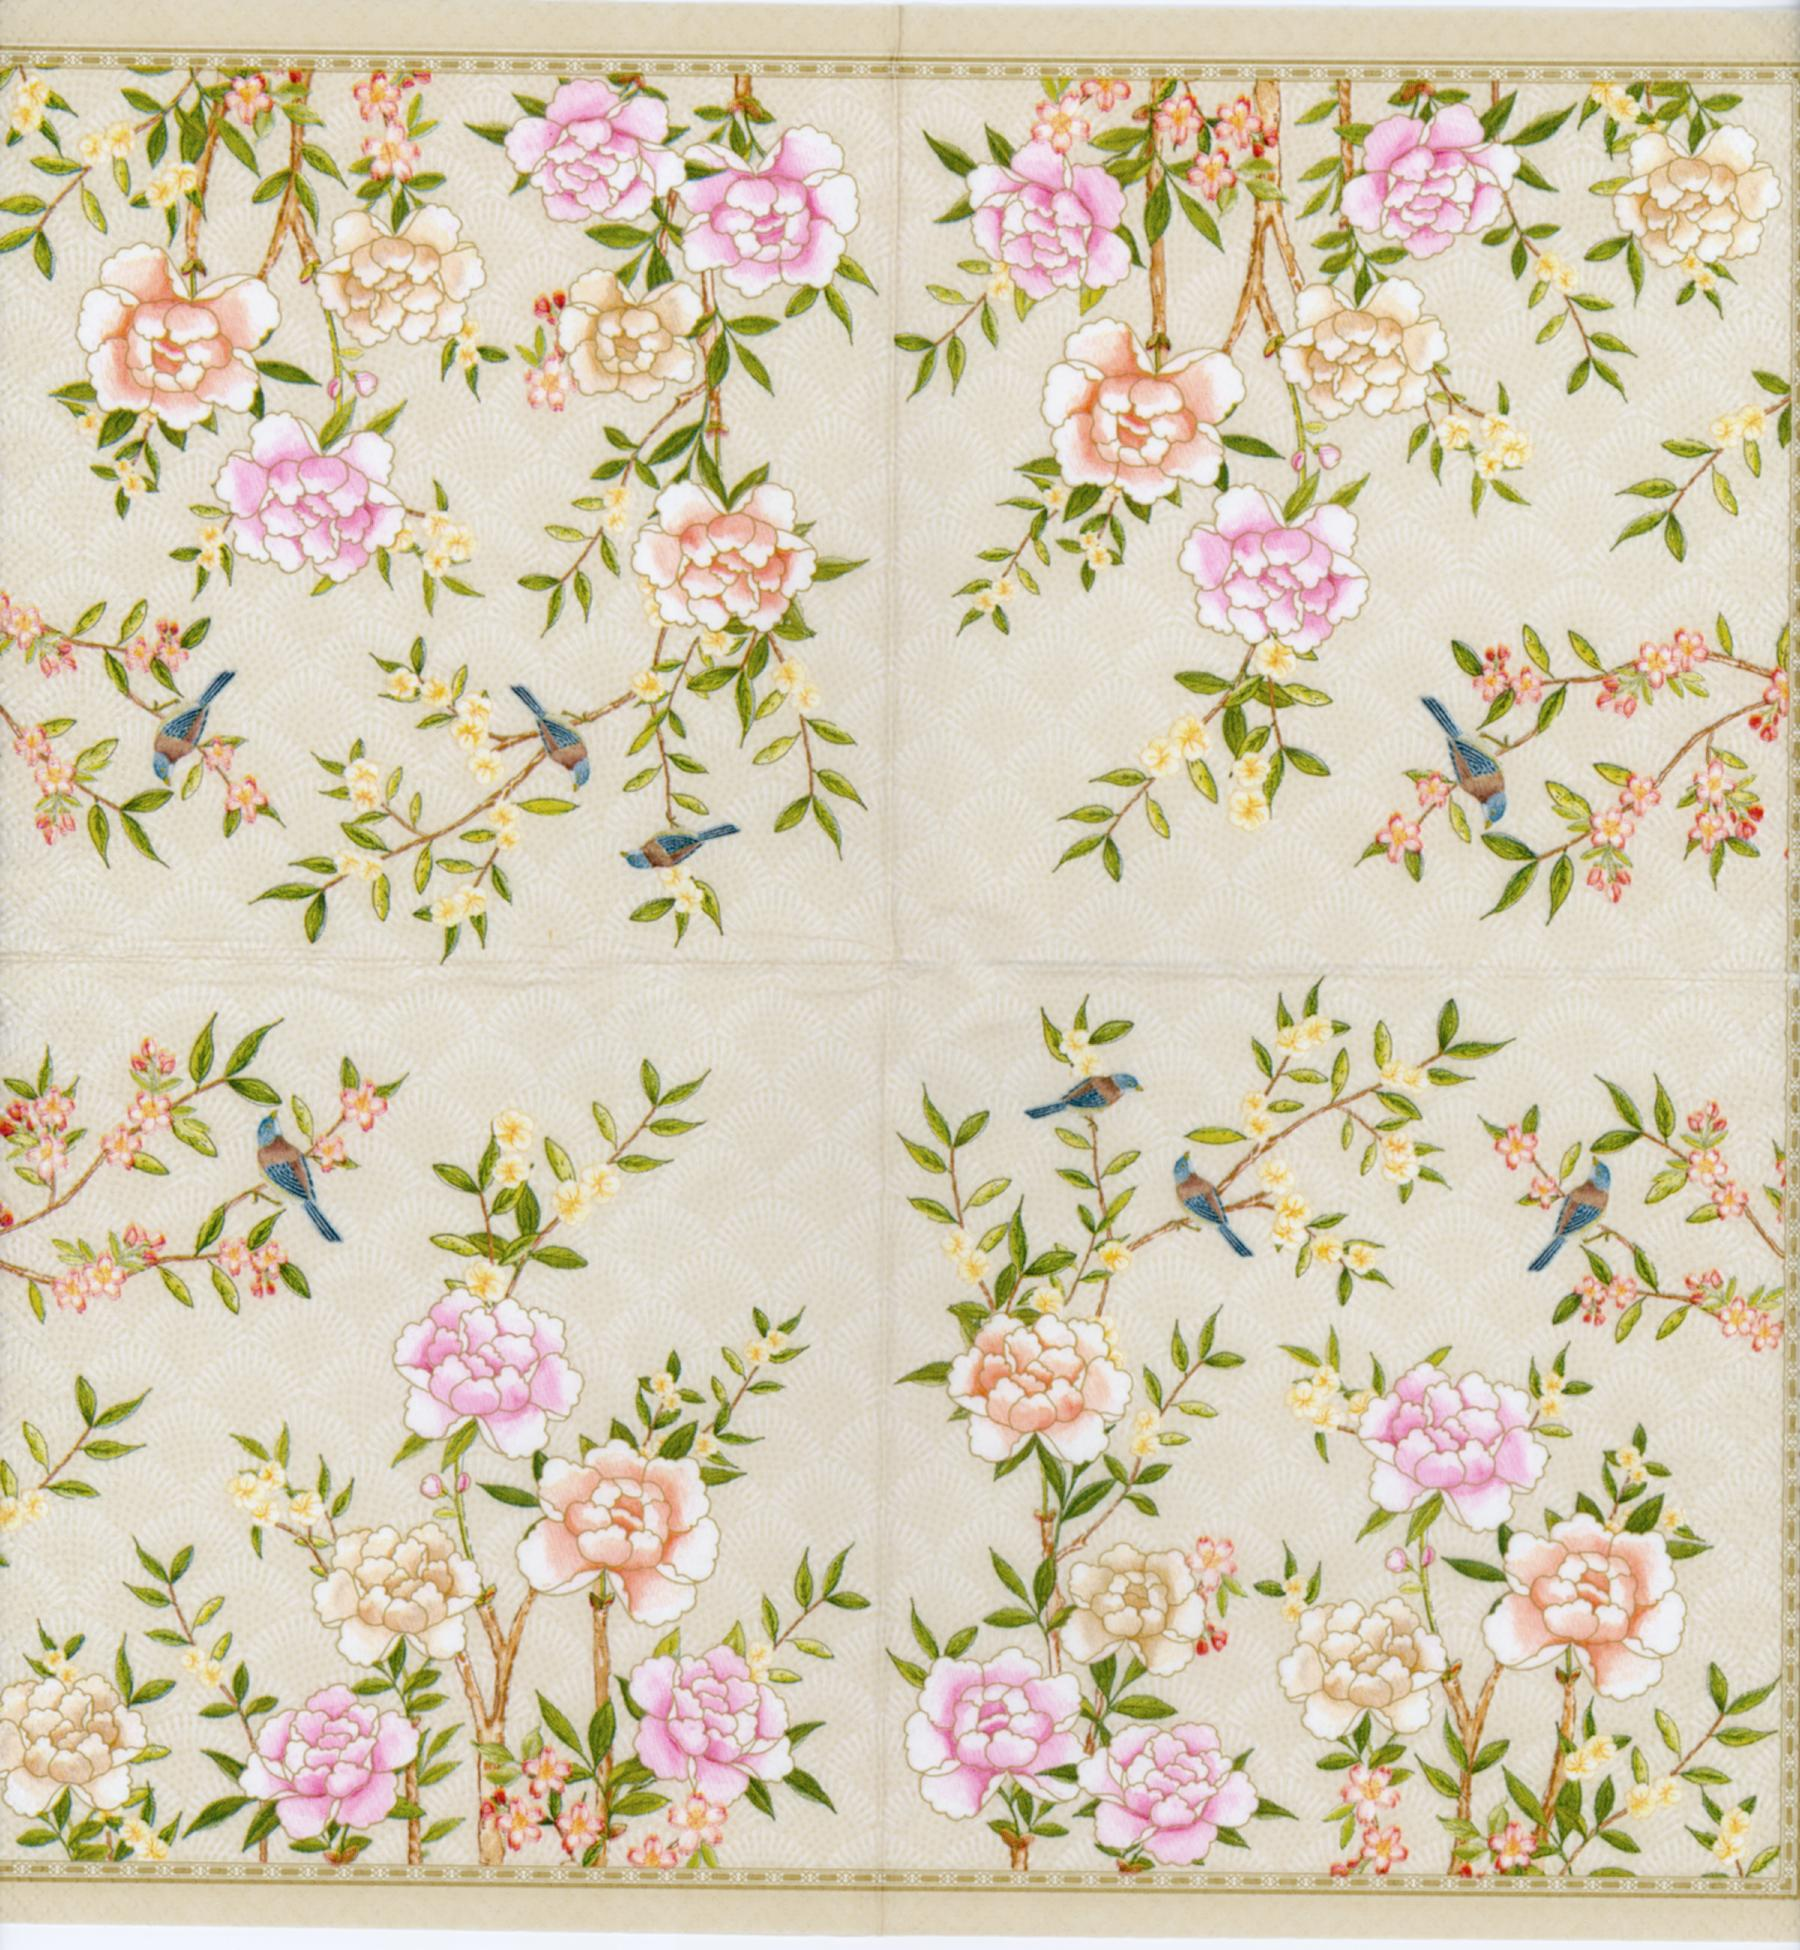 Decorative Paper Napkins Of Palace Garden In The Light